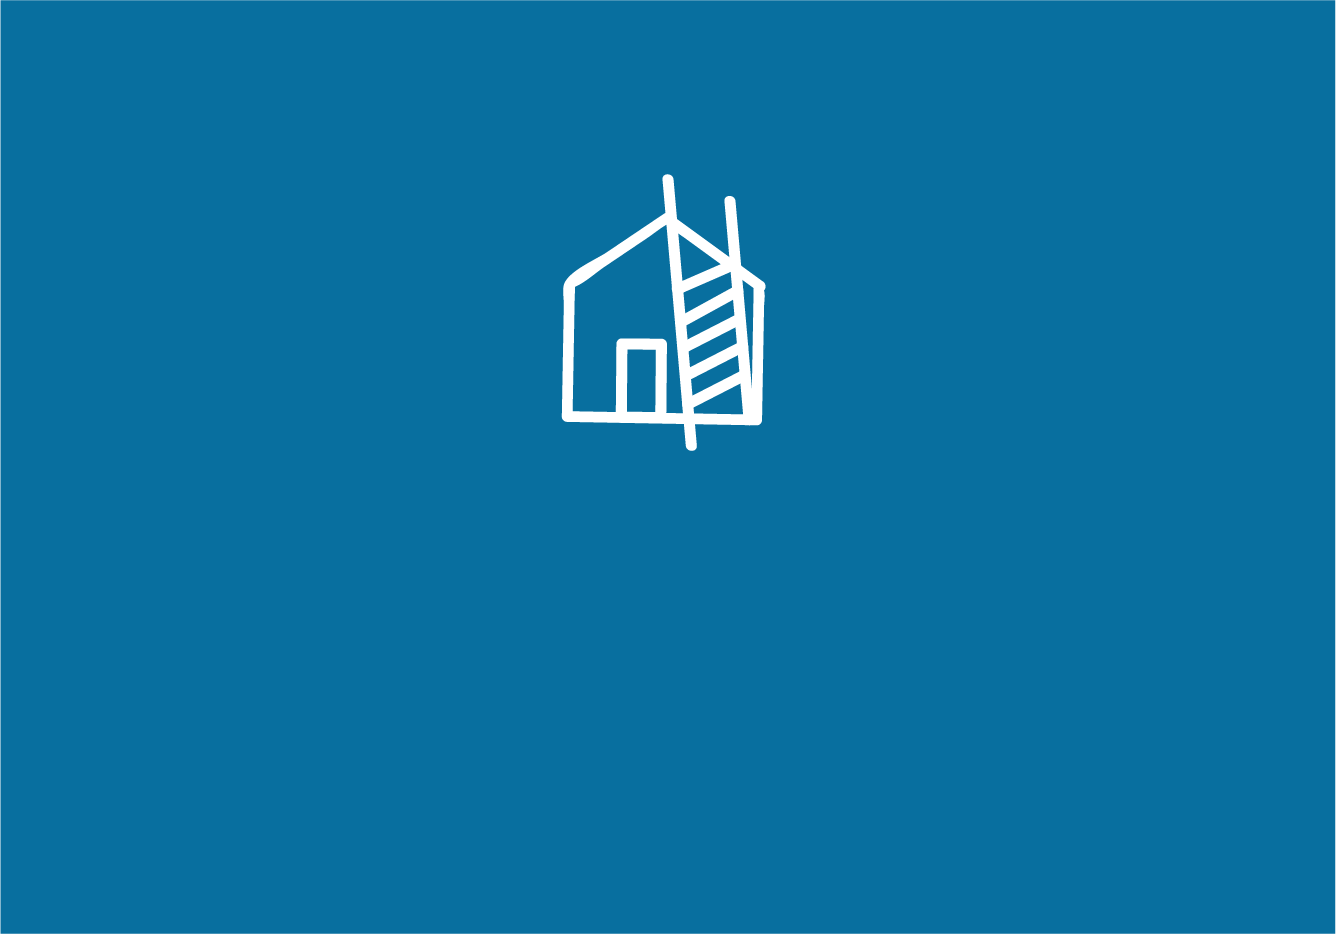 House with Ladder Icon